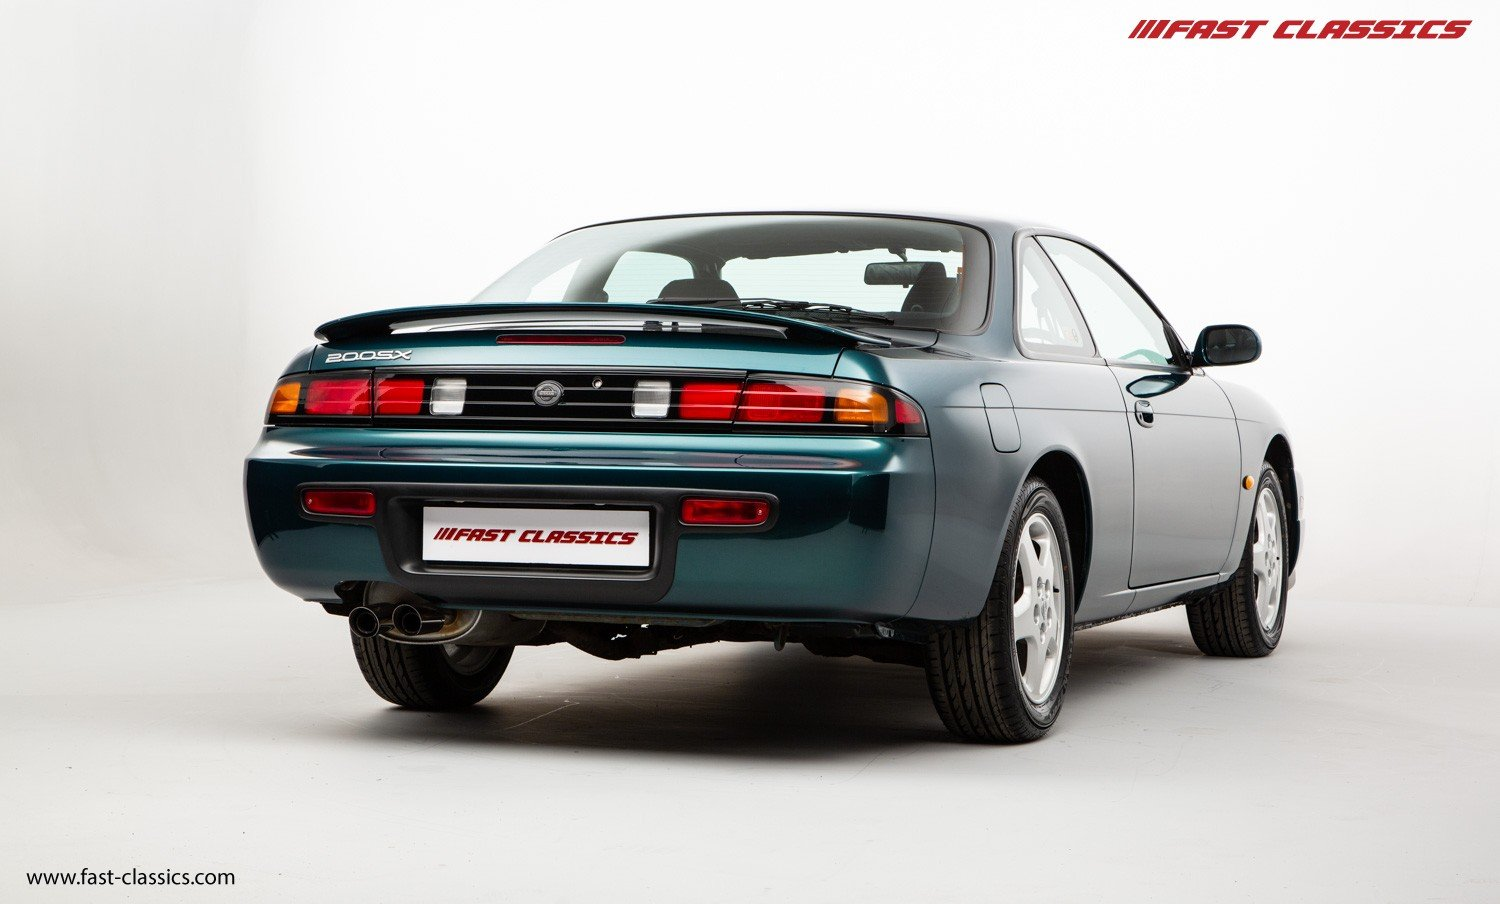 1999 NISSAN 200SX // UK SUPPLIED // 18K MILES // FAMILY OWNED For Sale (picture 3 of 6)